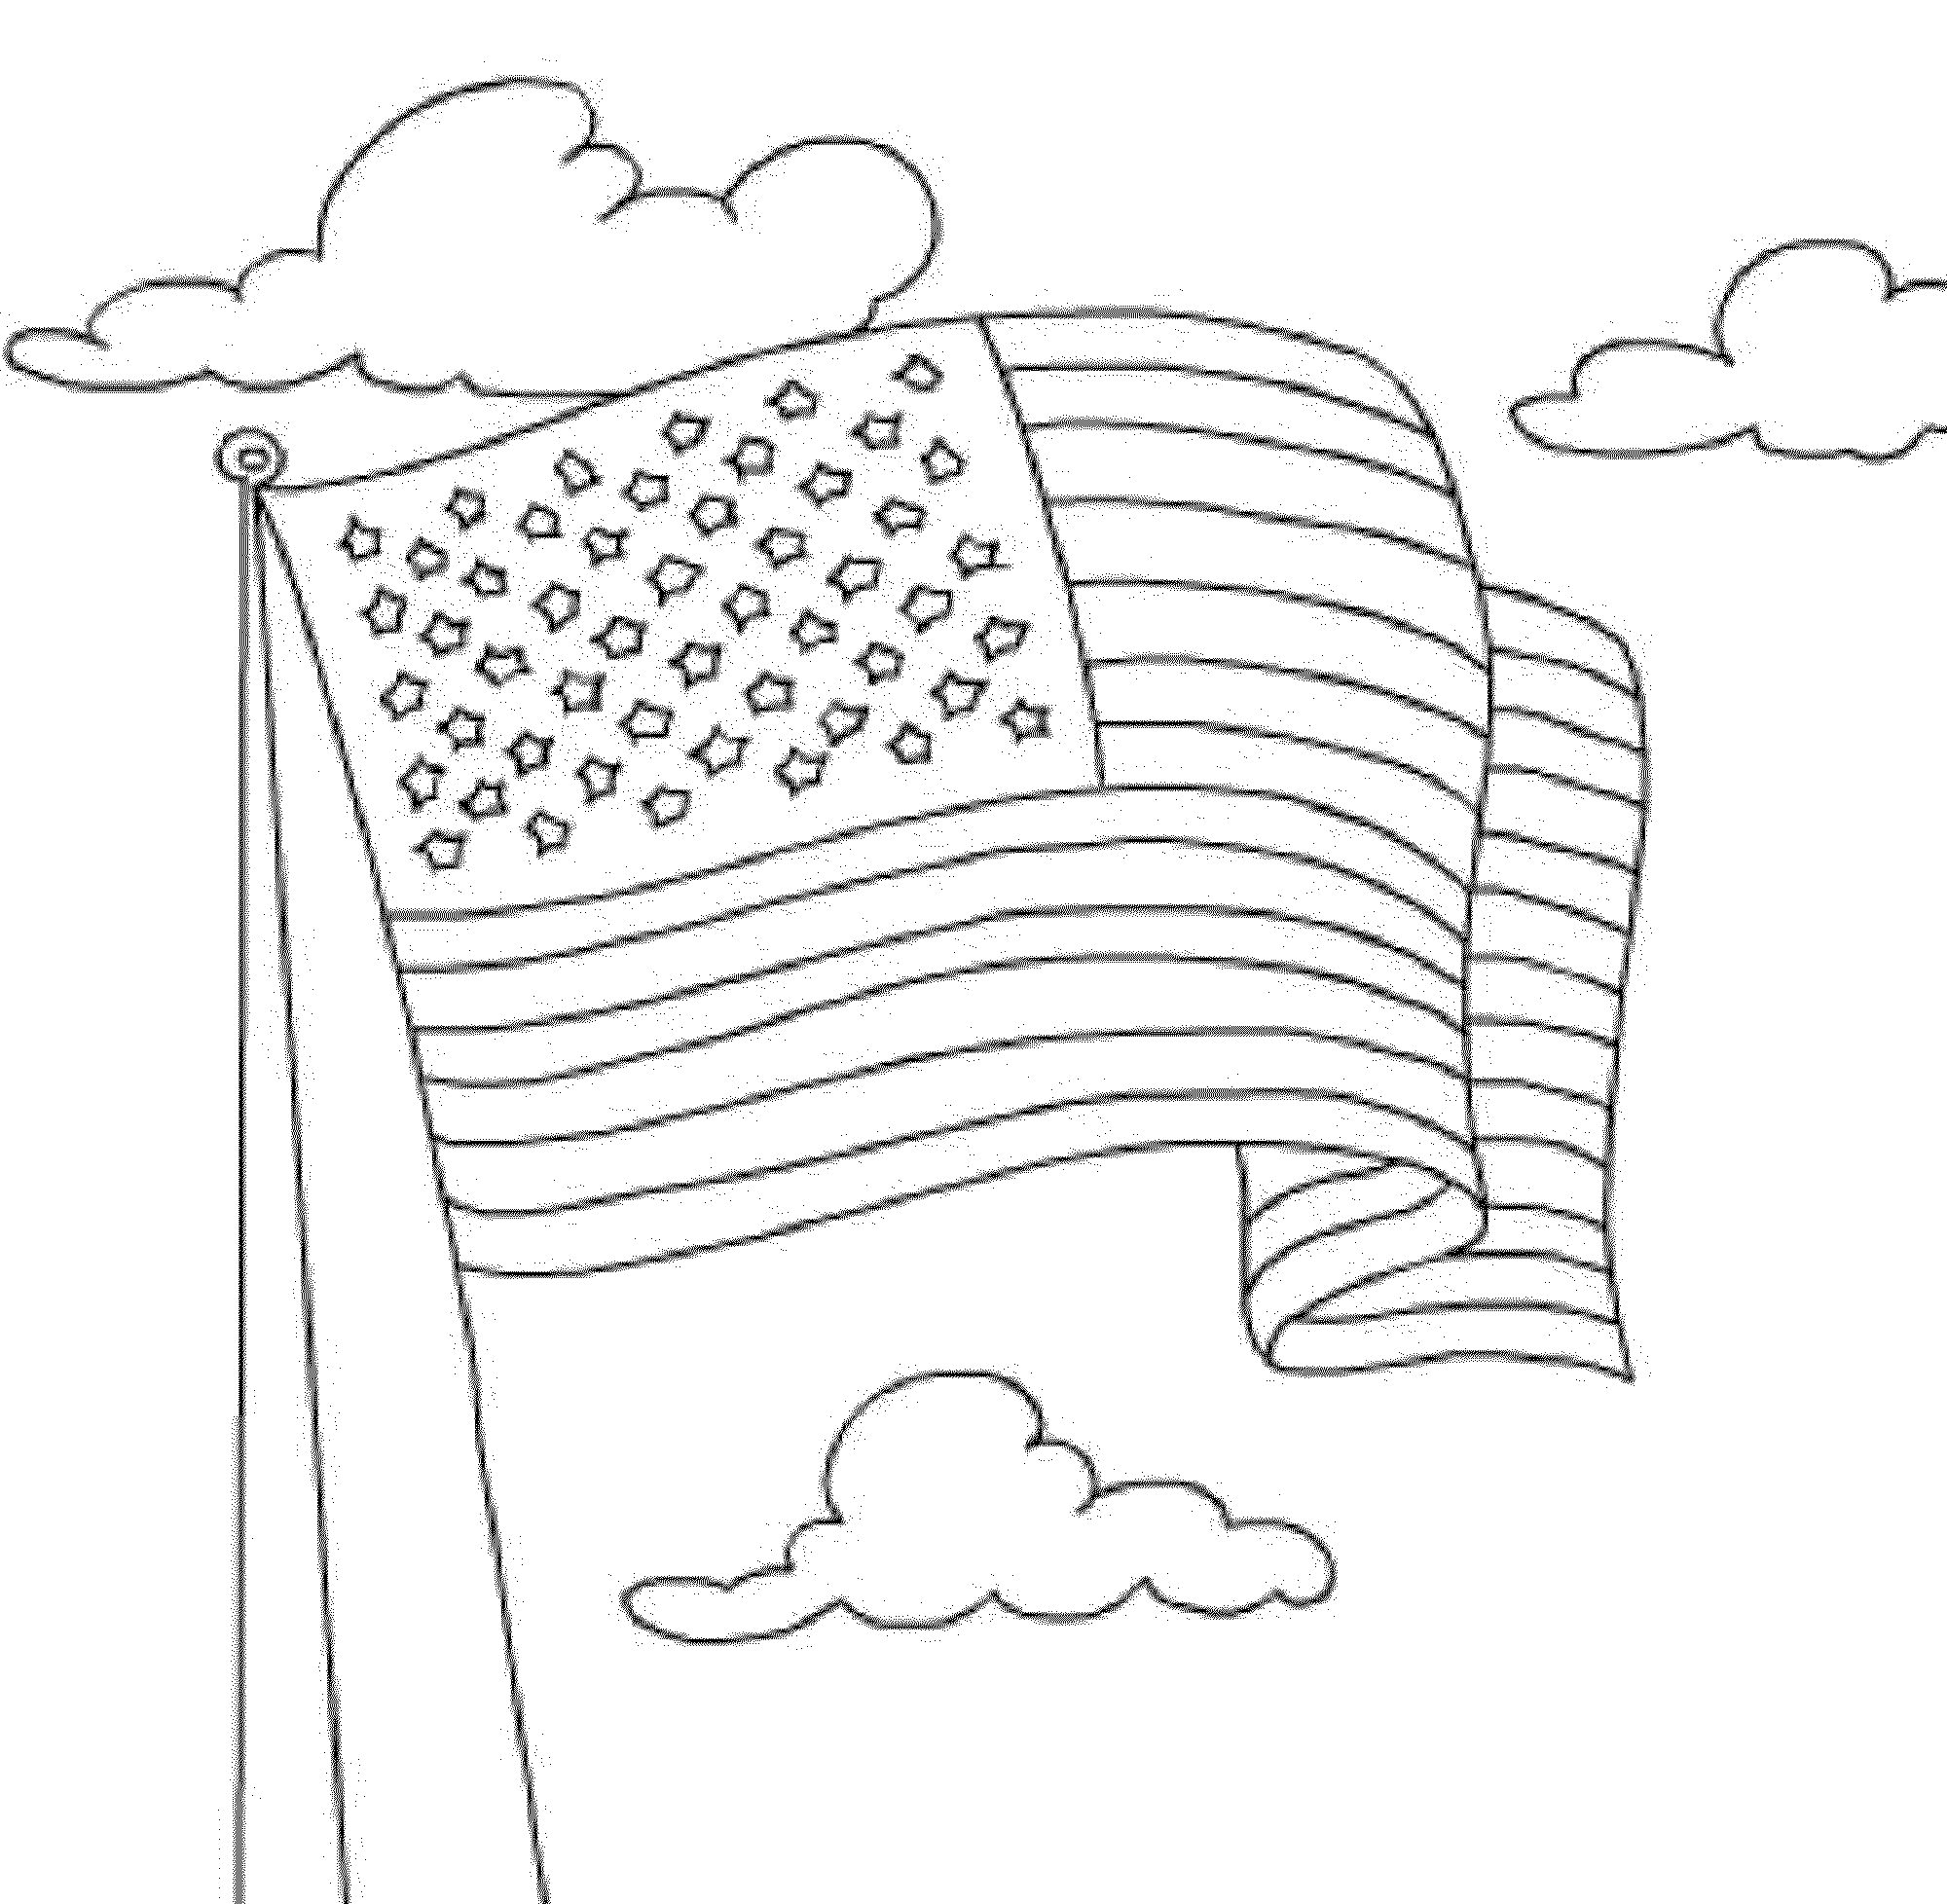 american flag coloring book american flag coloring page for the love of the country american coloring book flag